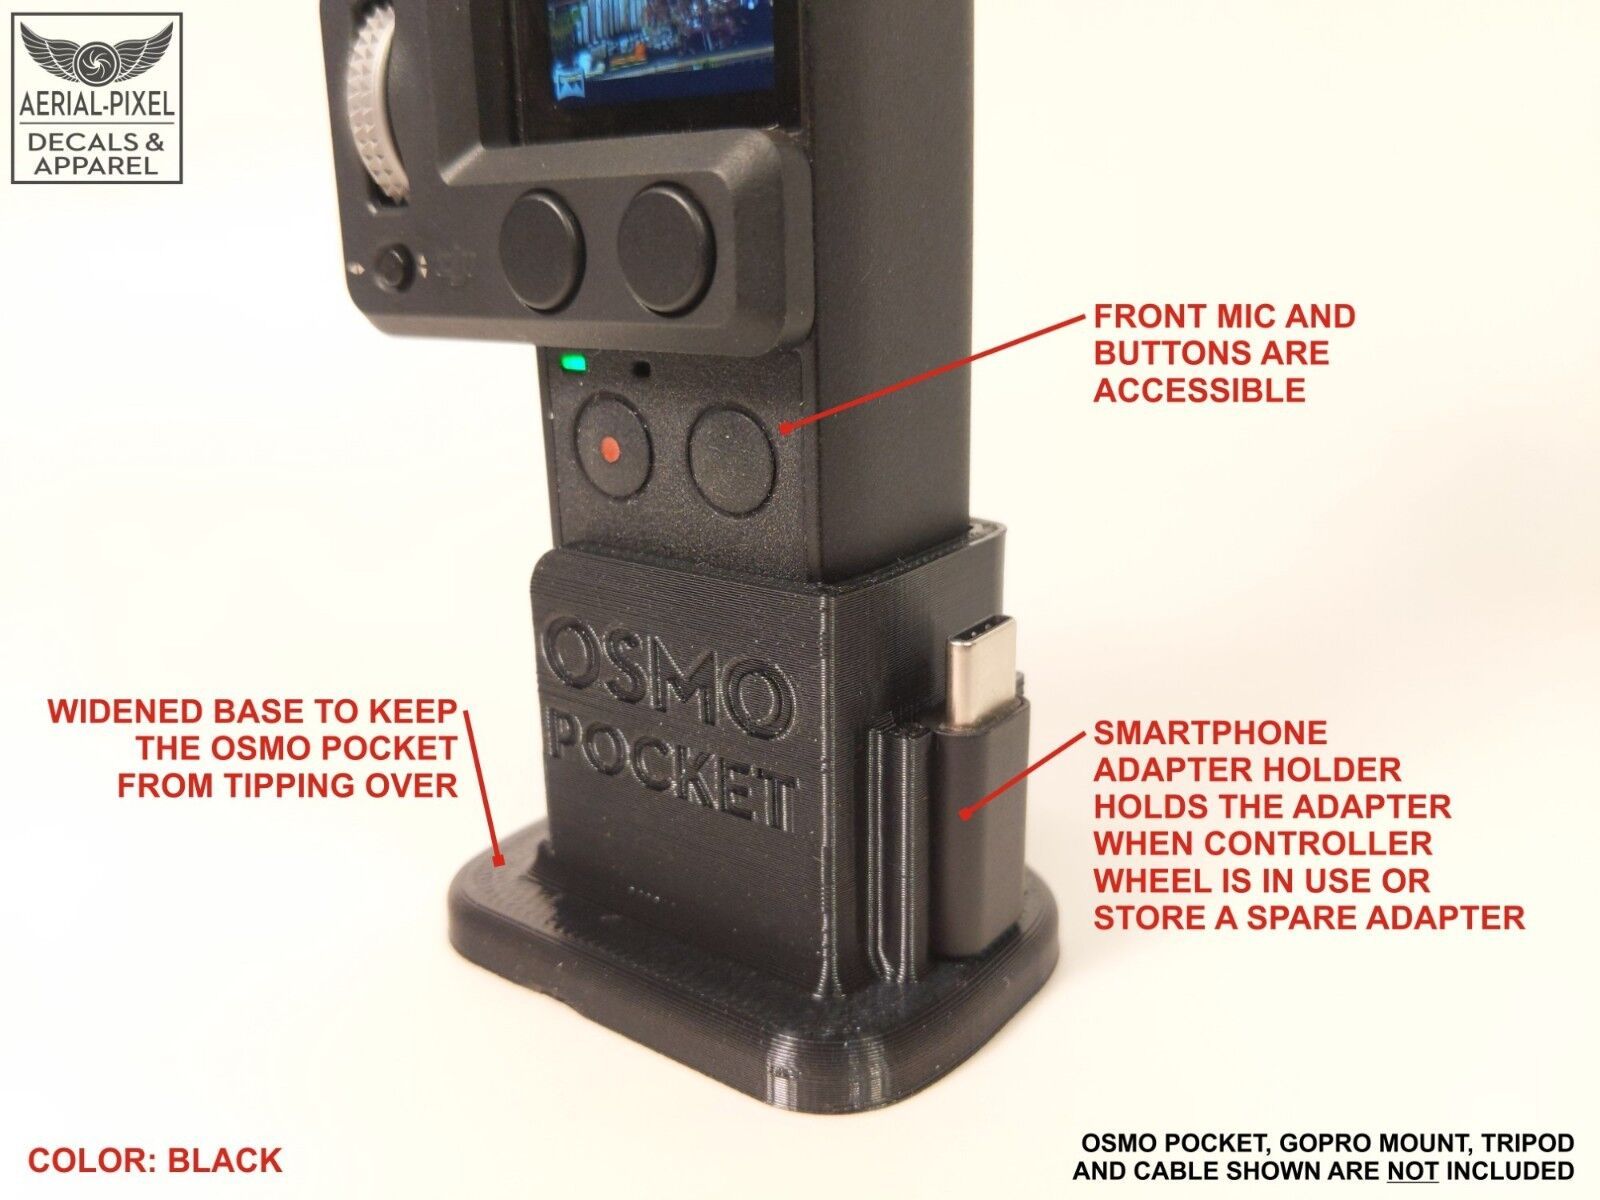 DJI OSMO Pocket Tripod + GoPro Adapter Mount with Base Flex Rubber 3D Print V2.3